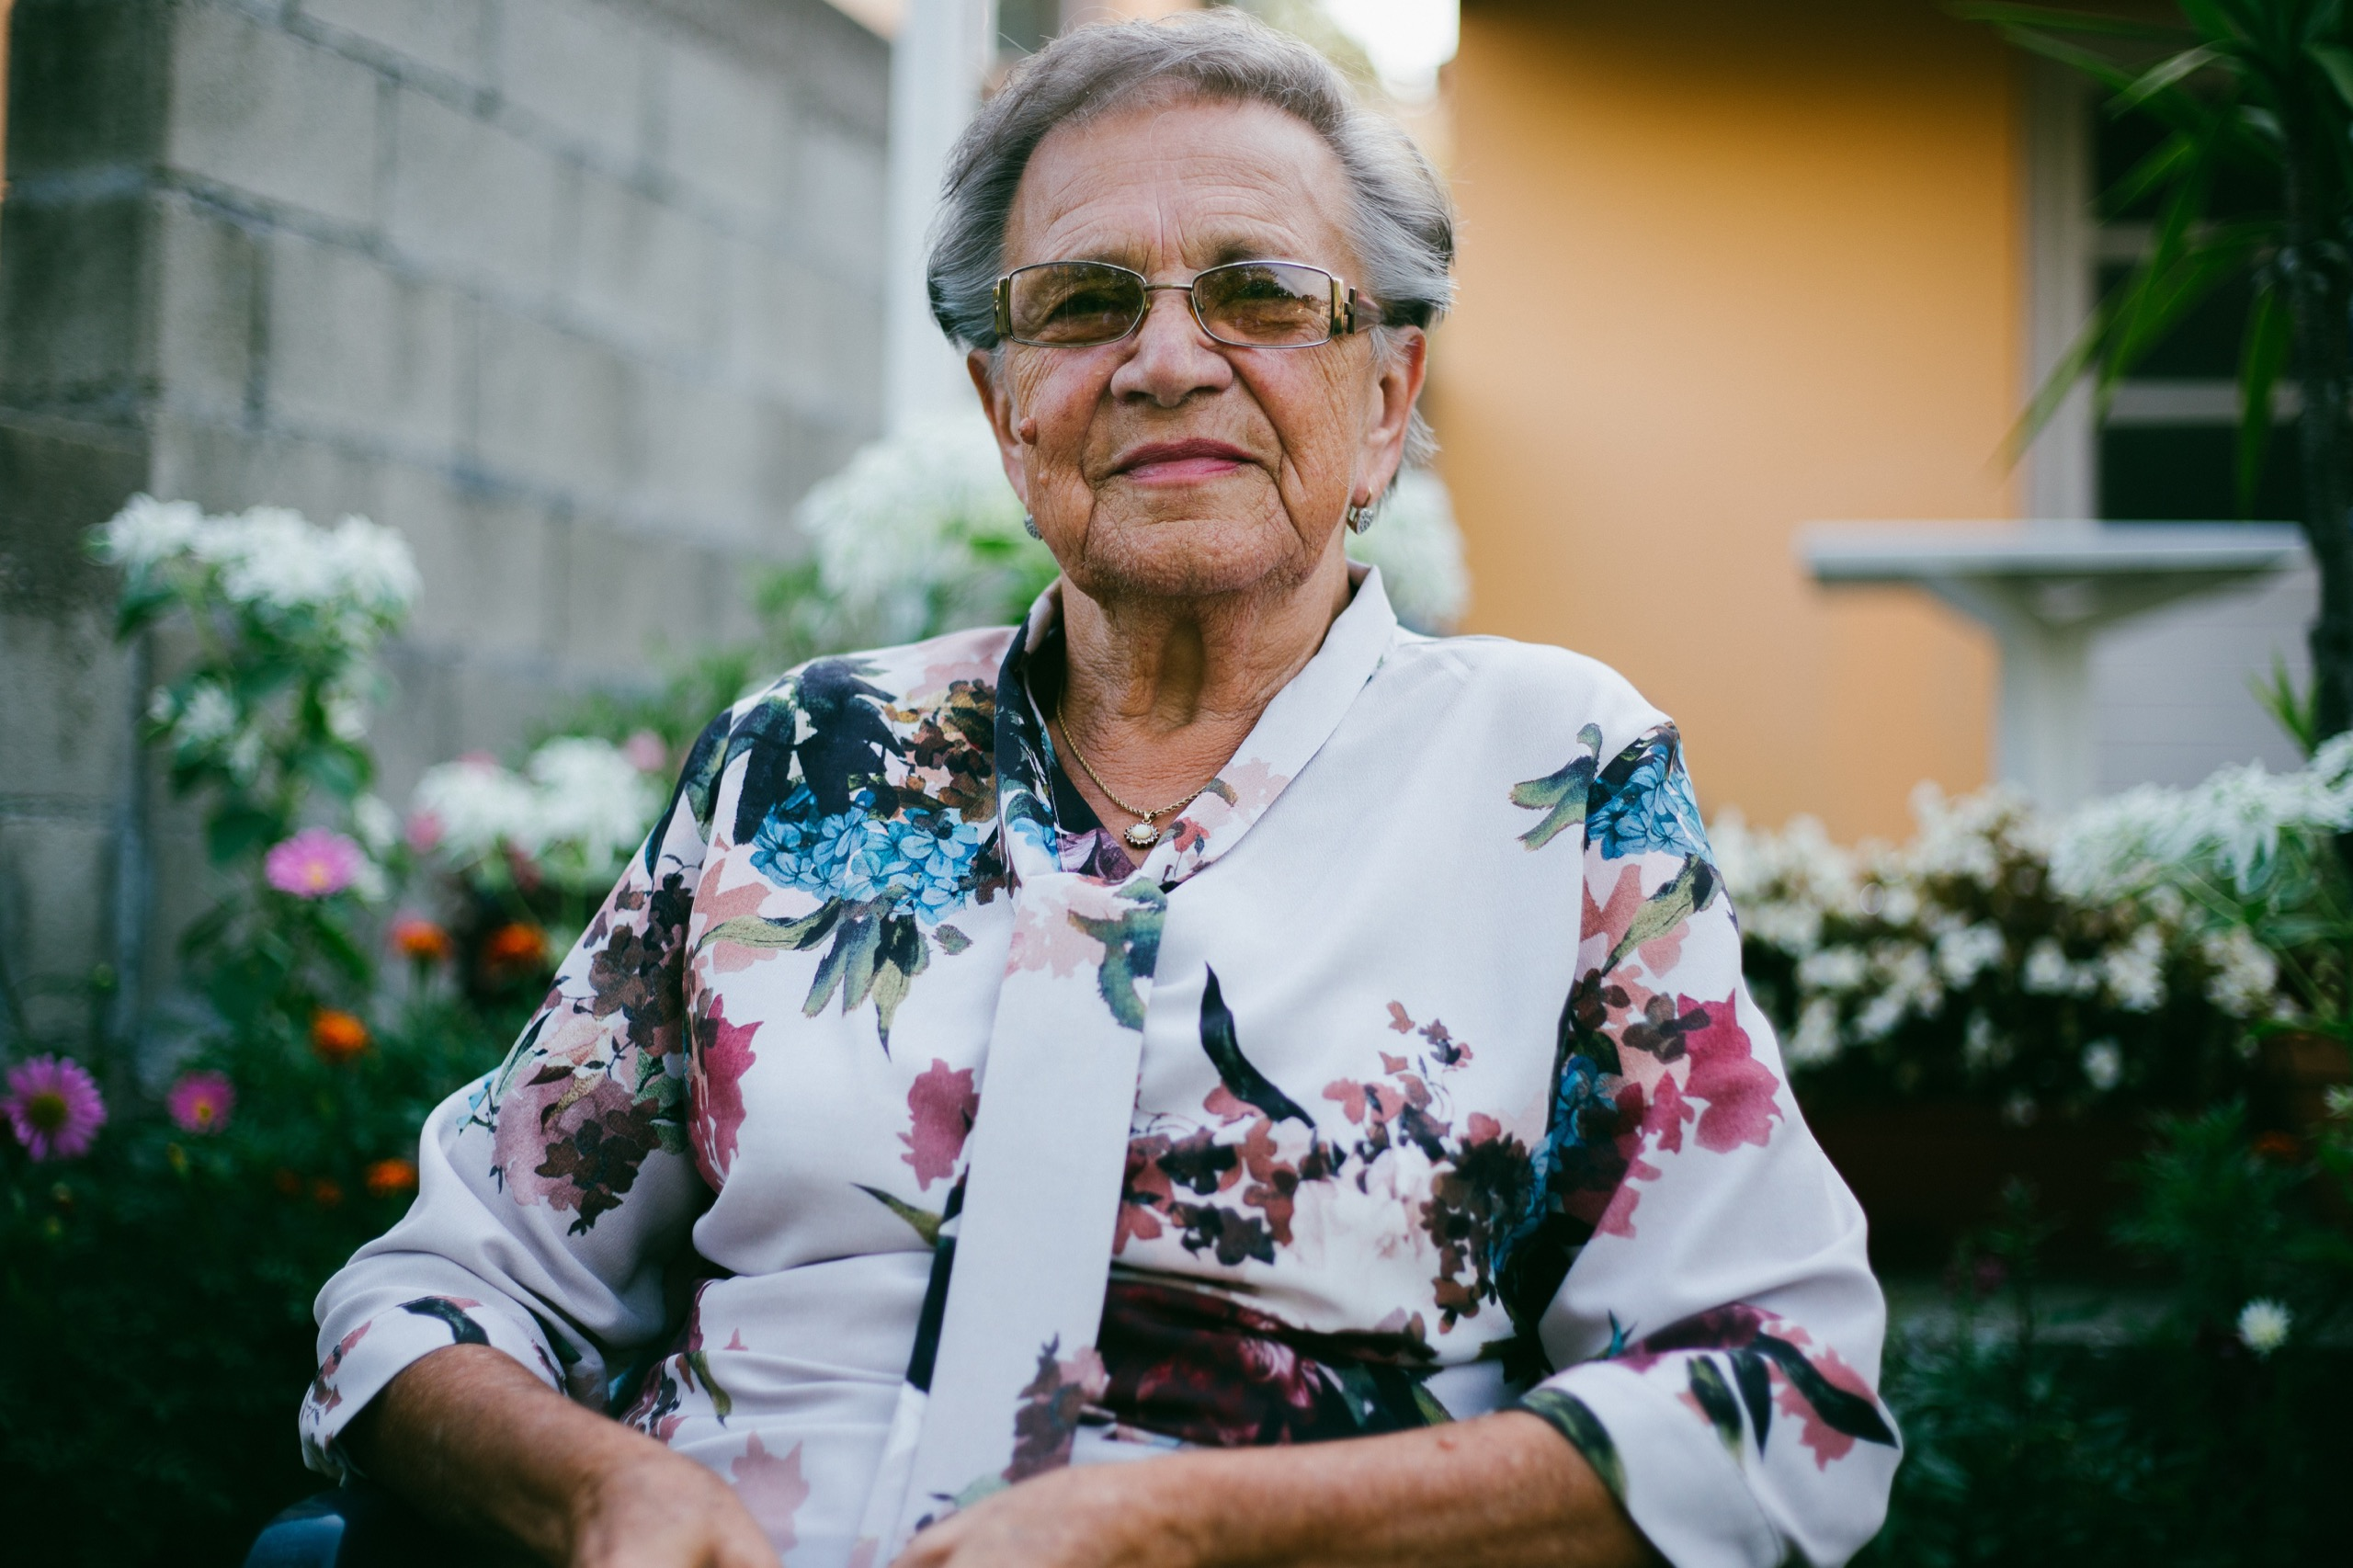 old lady in flowery shirt